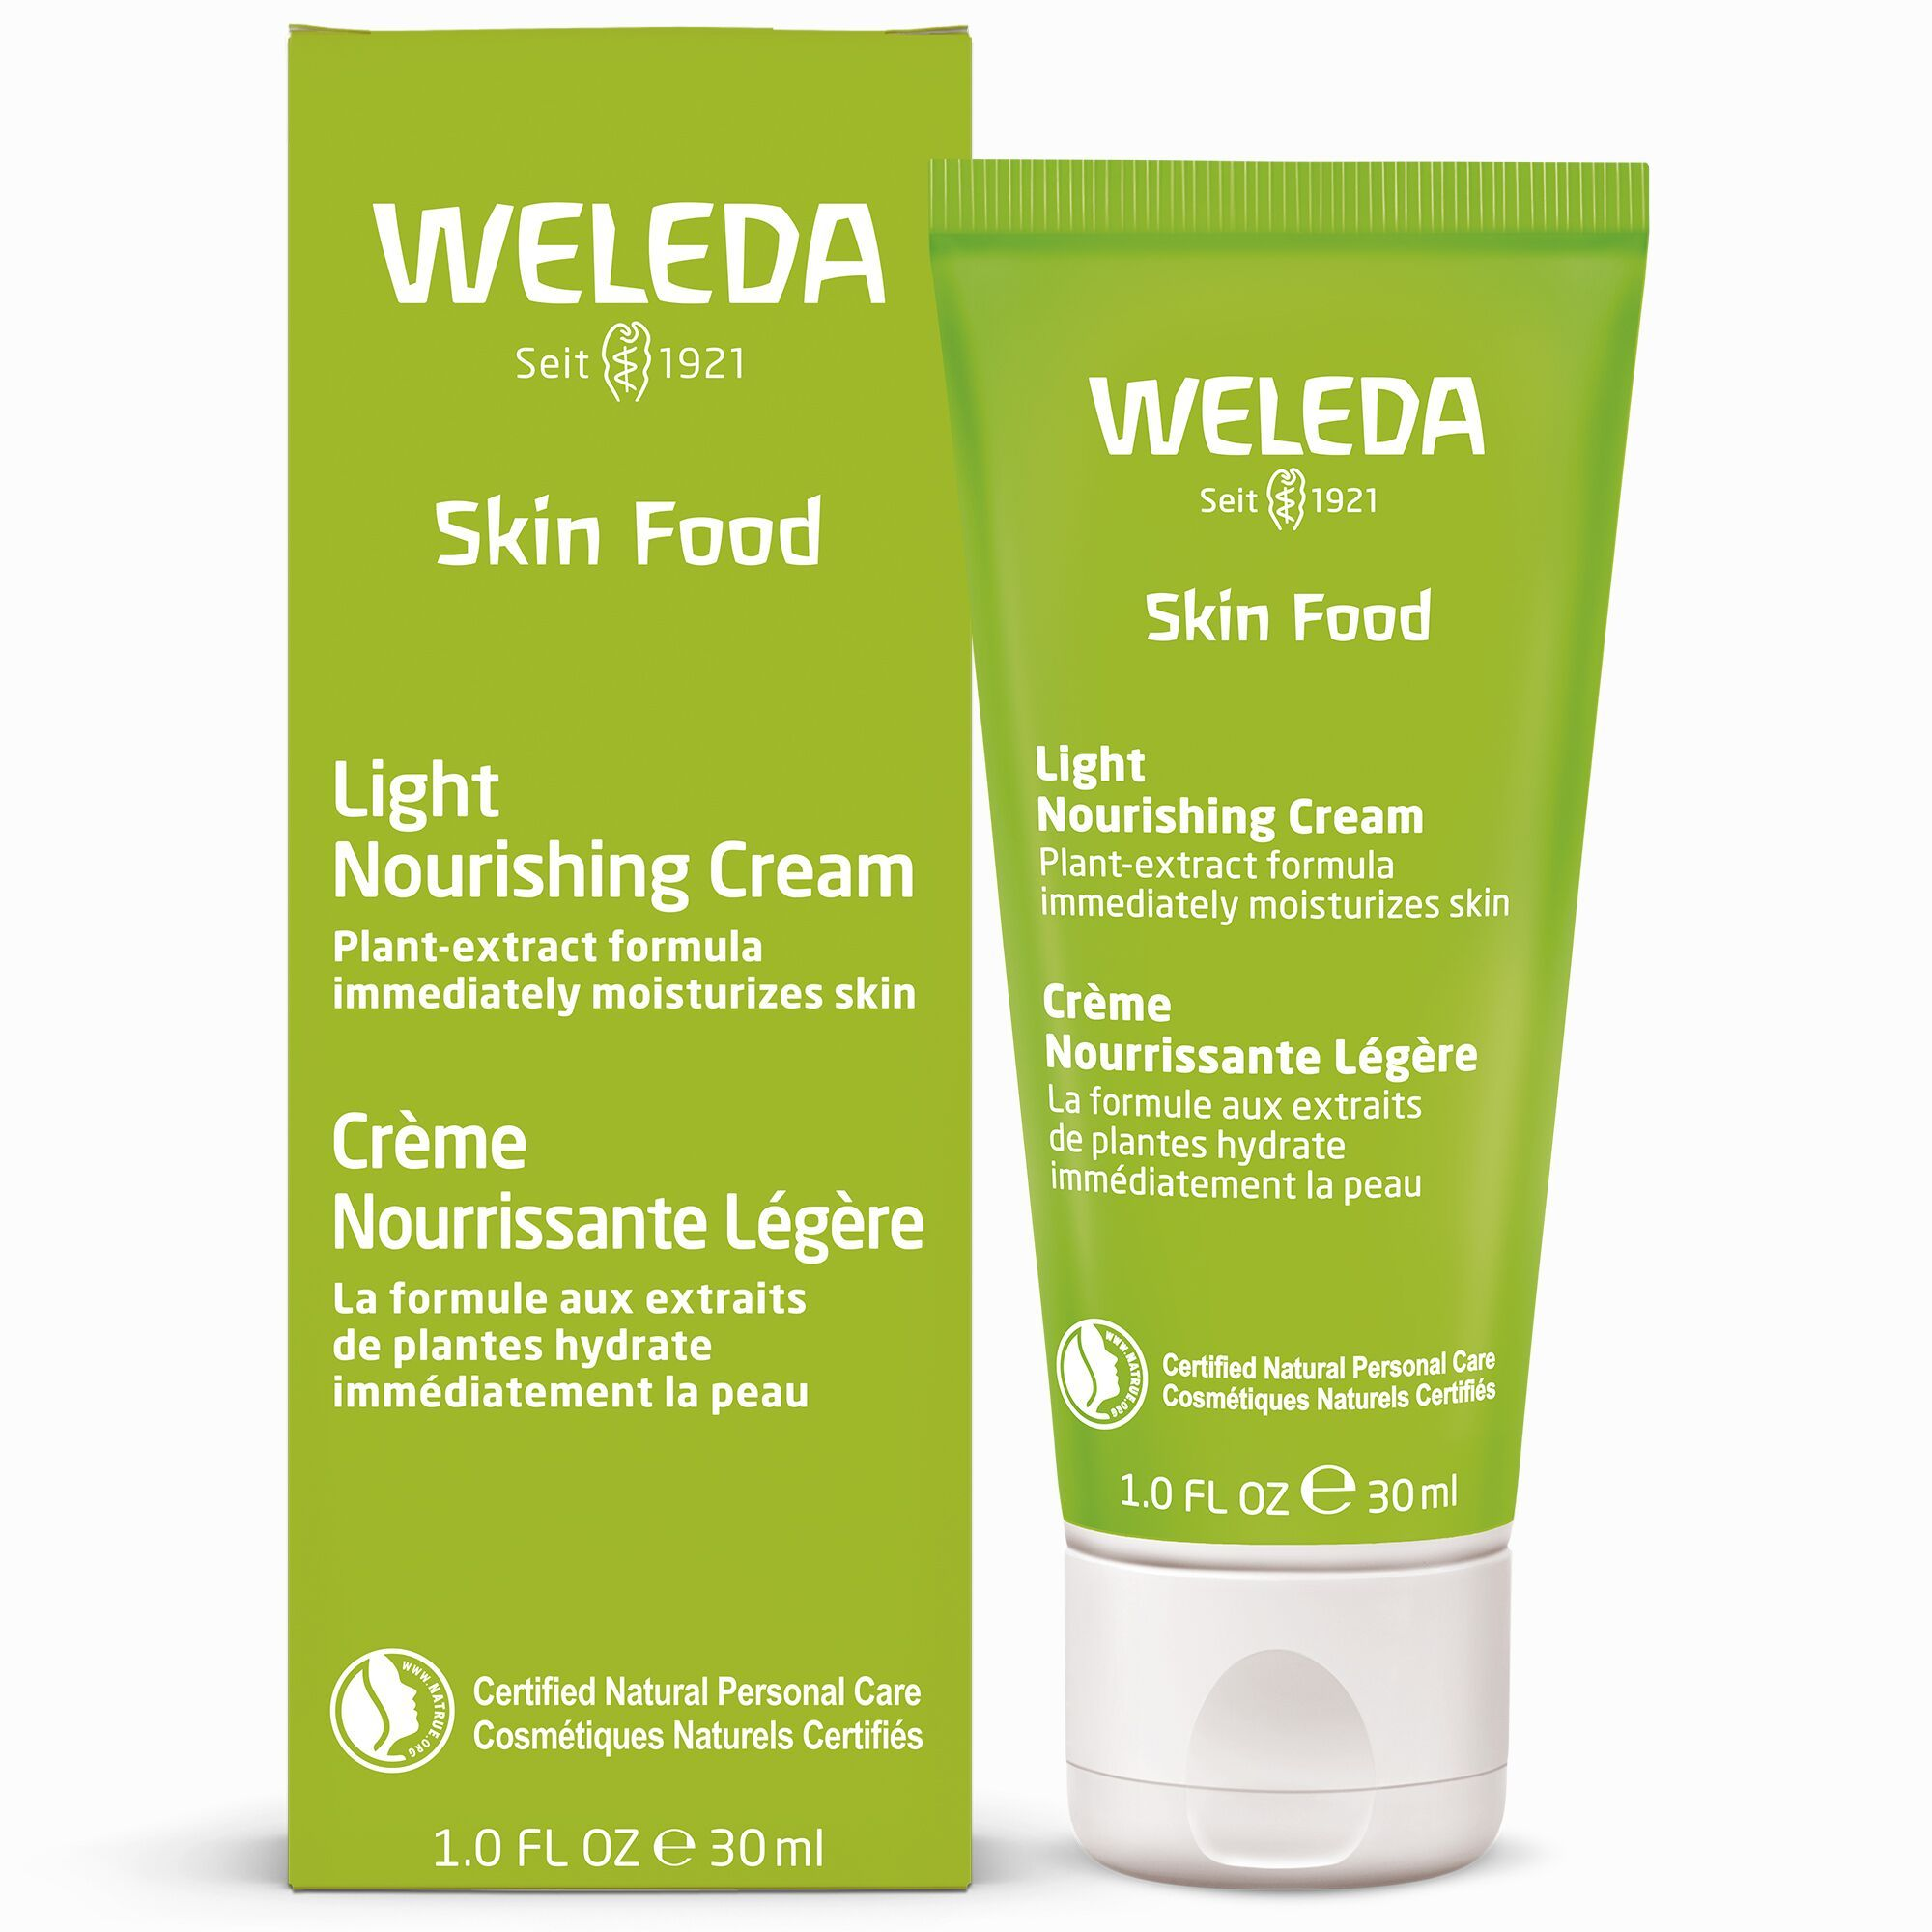 Personal Care - Weleda - Skin Food Light Nourishing Cream, 30mL